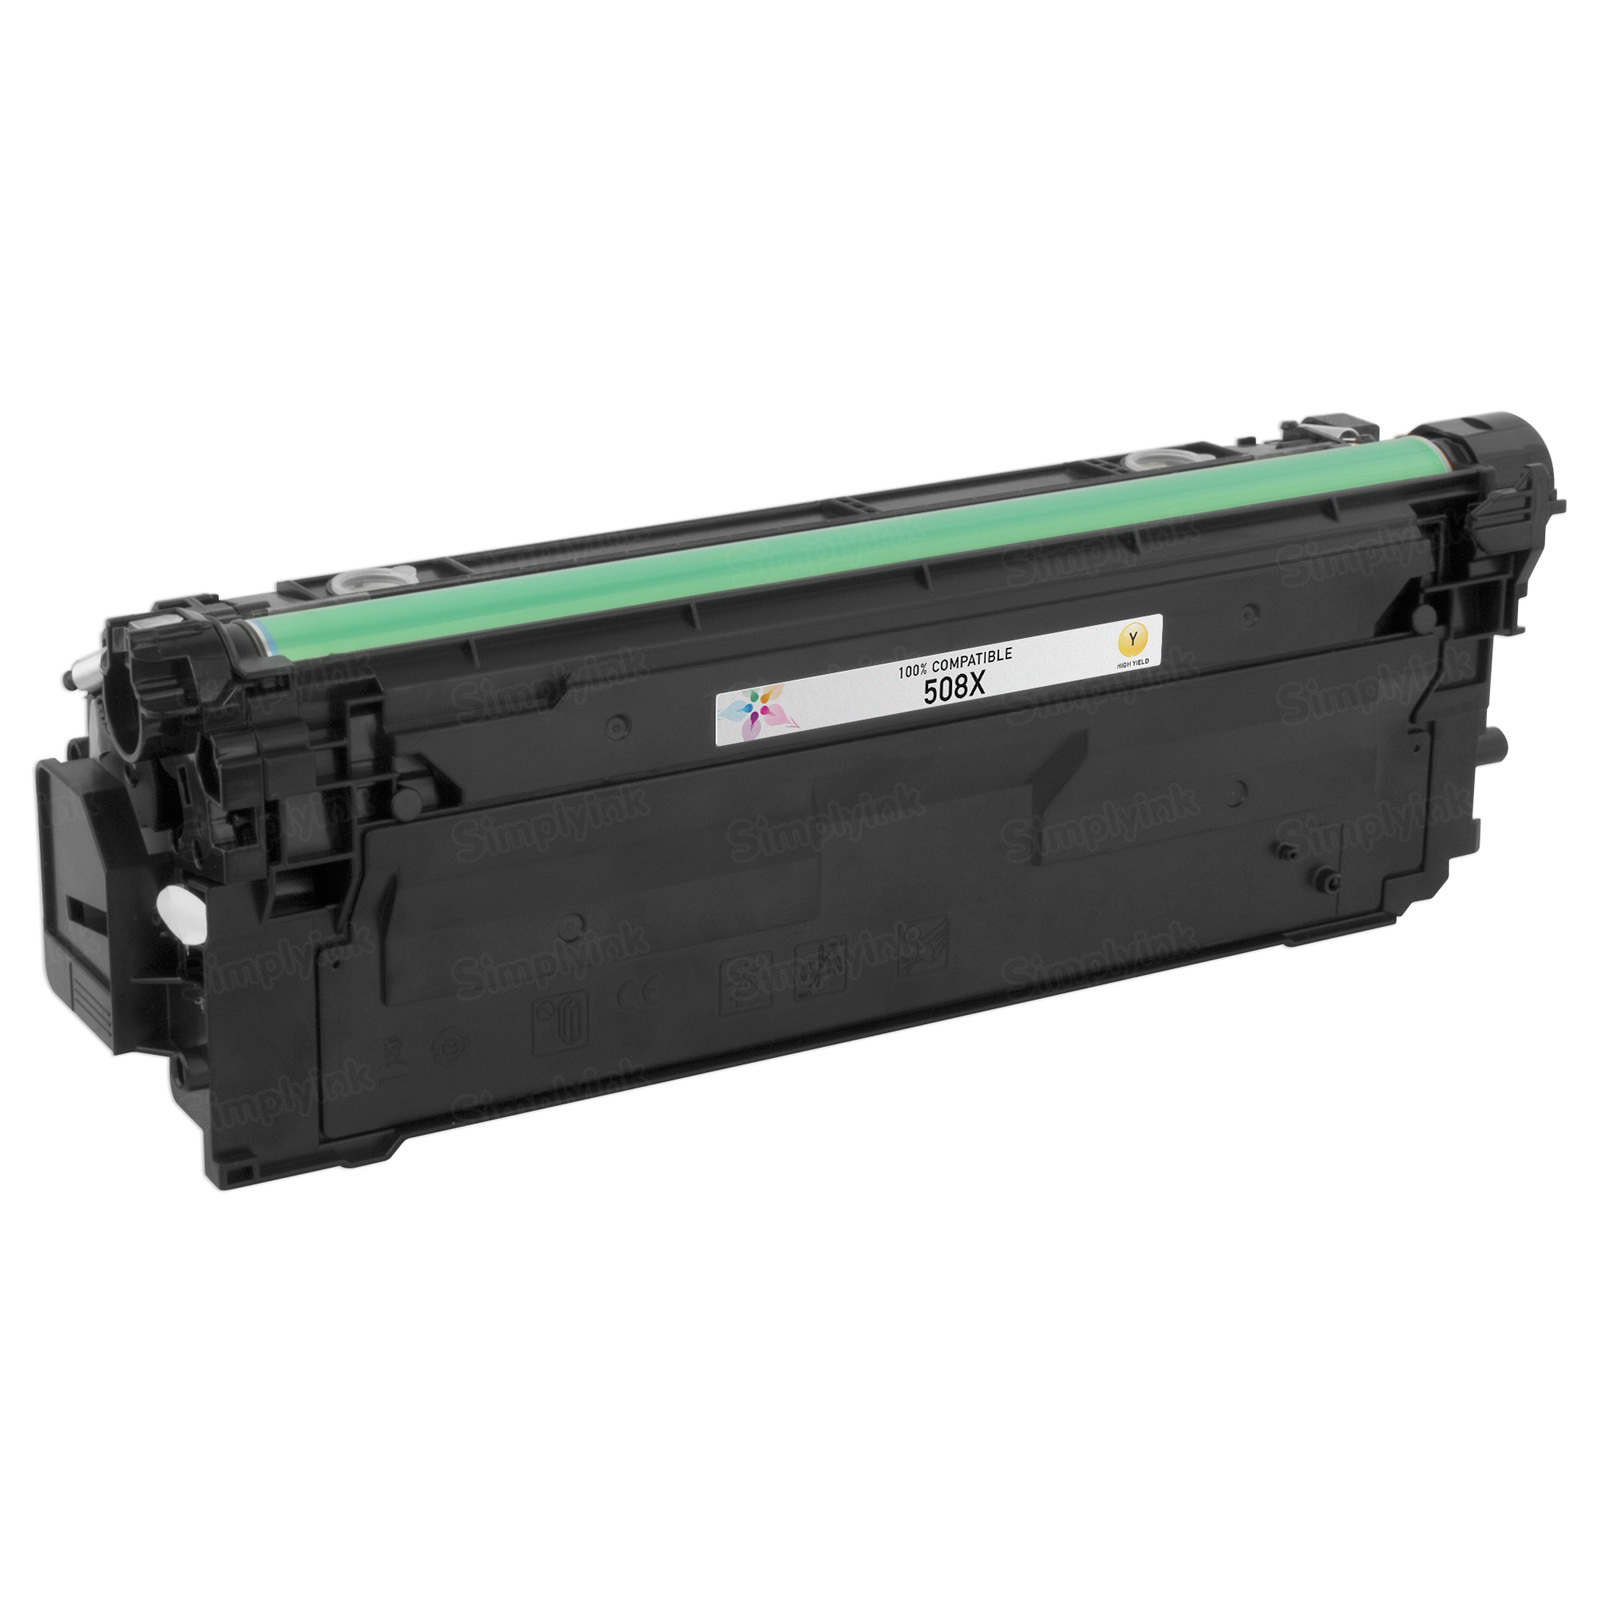 Replacement HY Yellow Toner for HP 508X